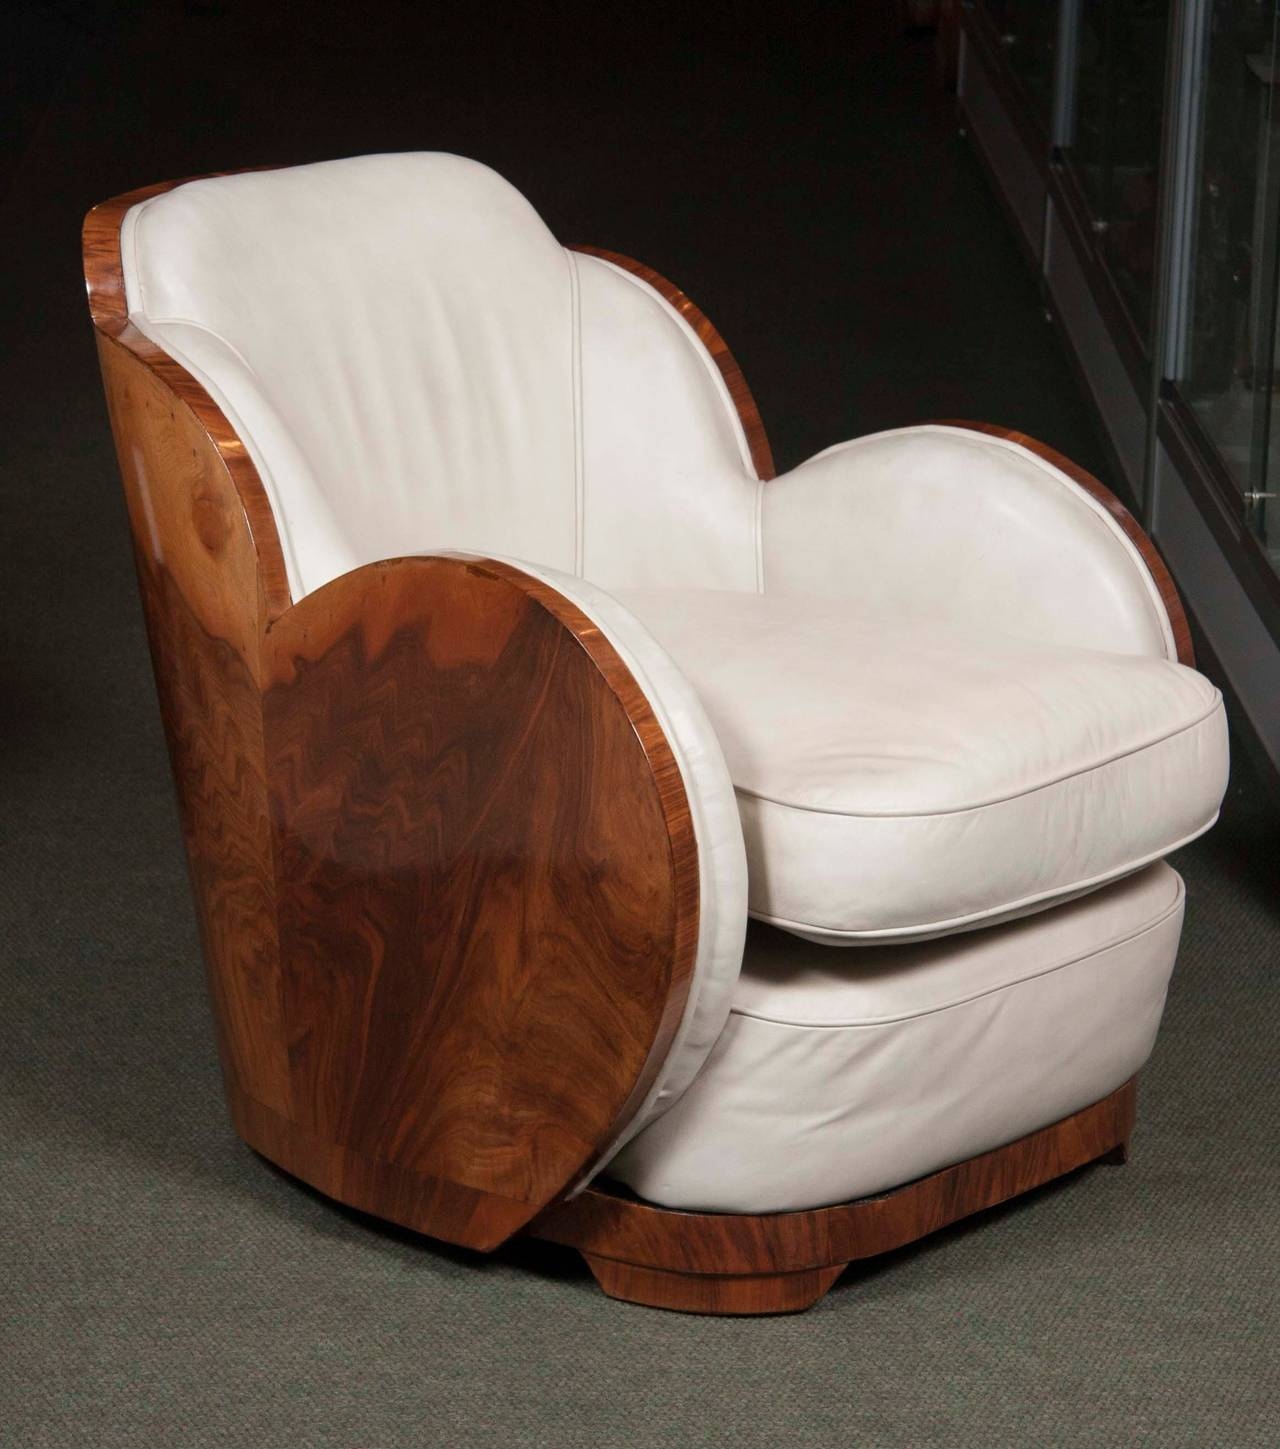 Art deco sofa and armchairs by english epstein co at 1stdibs - Epstein art deco furniture ...